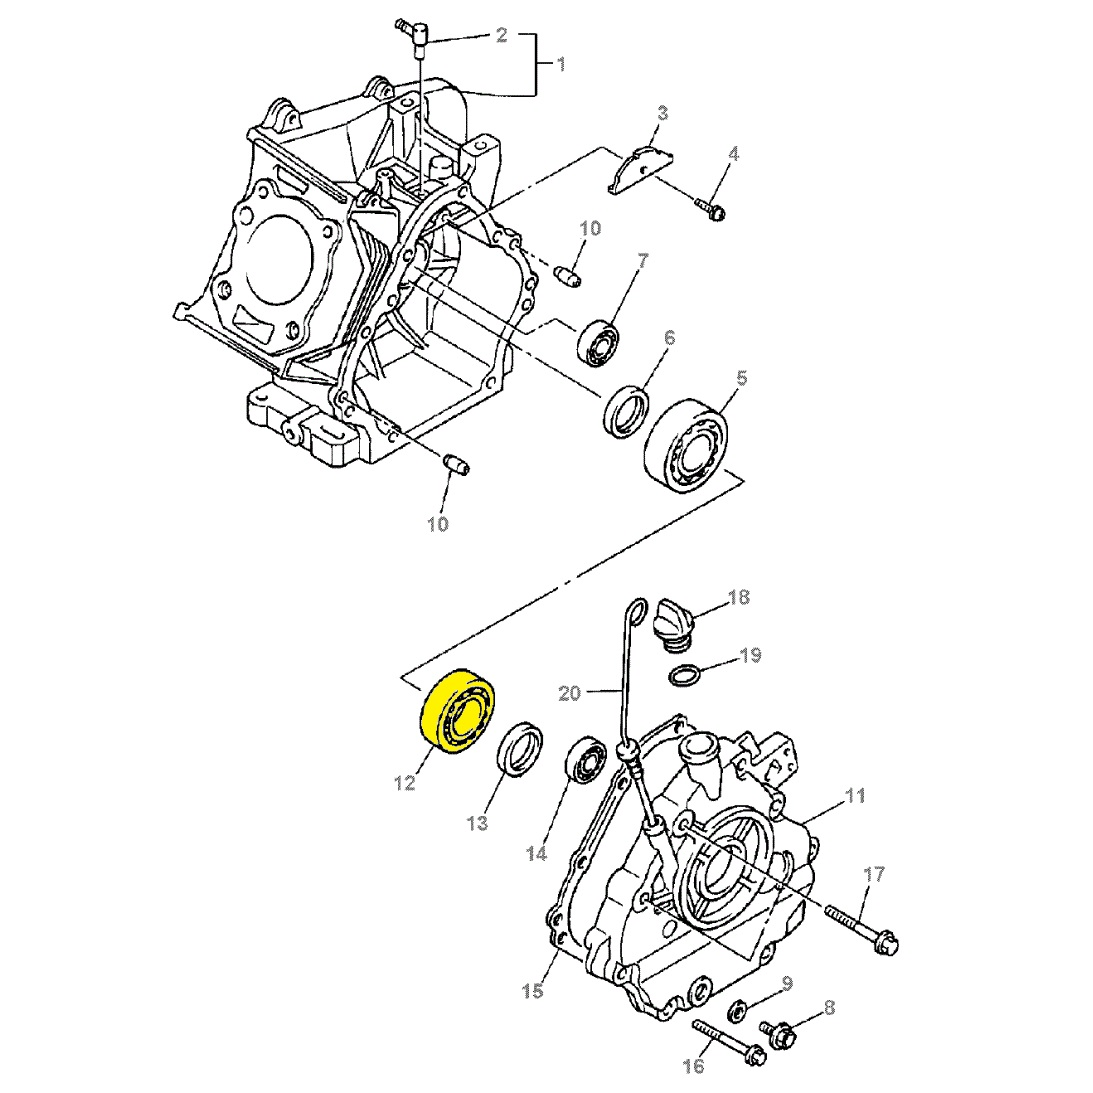 Yamaha G11 Golf Cart Wiring Diagram Gas Diagram